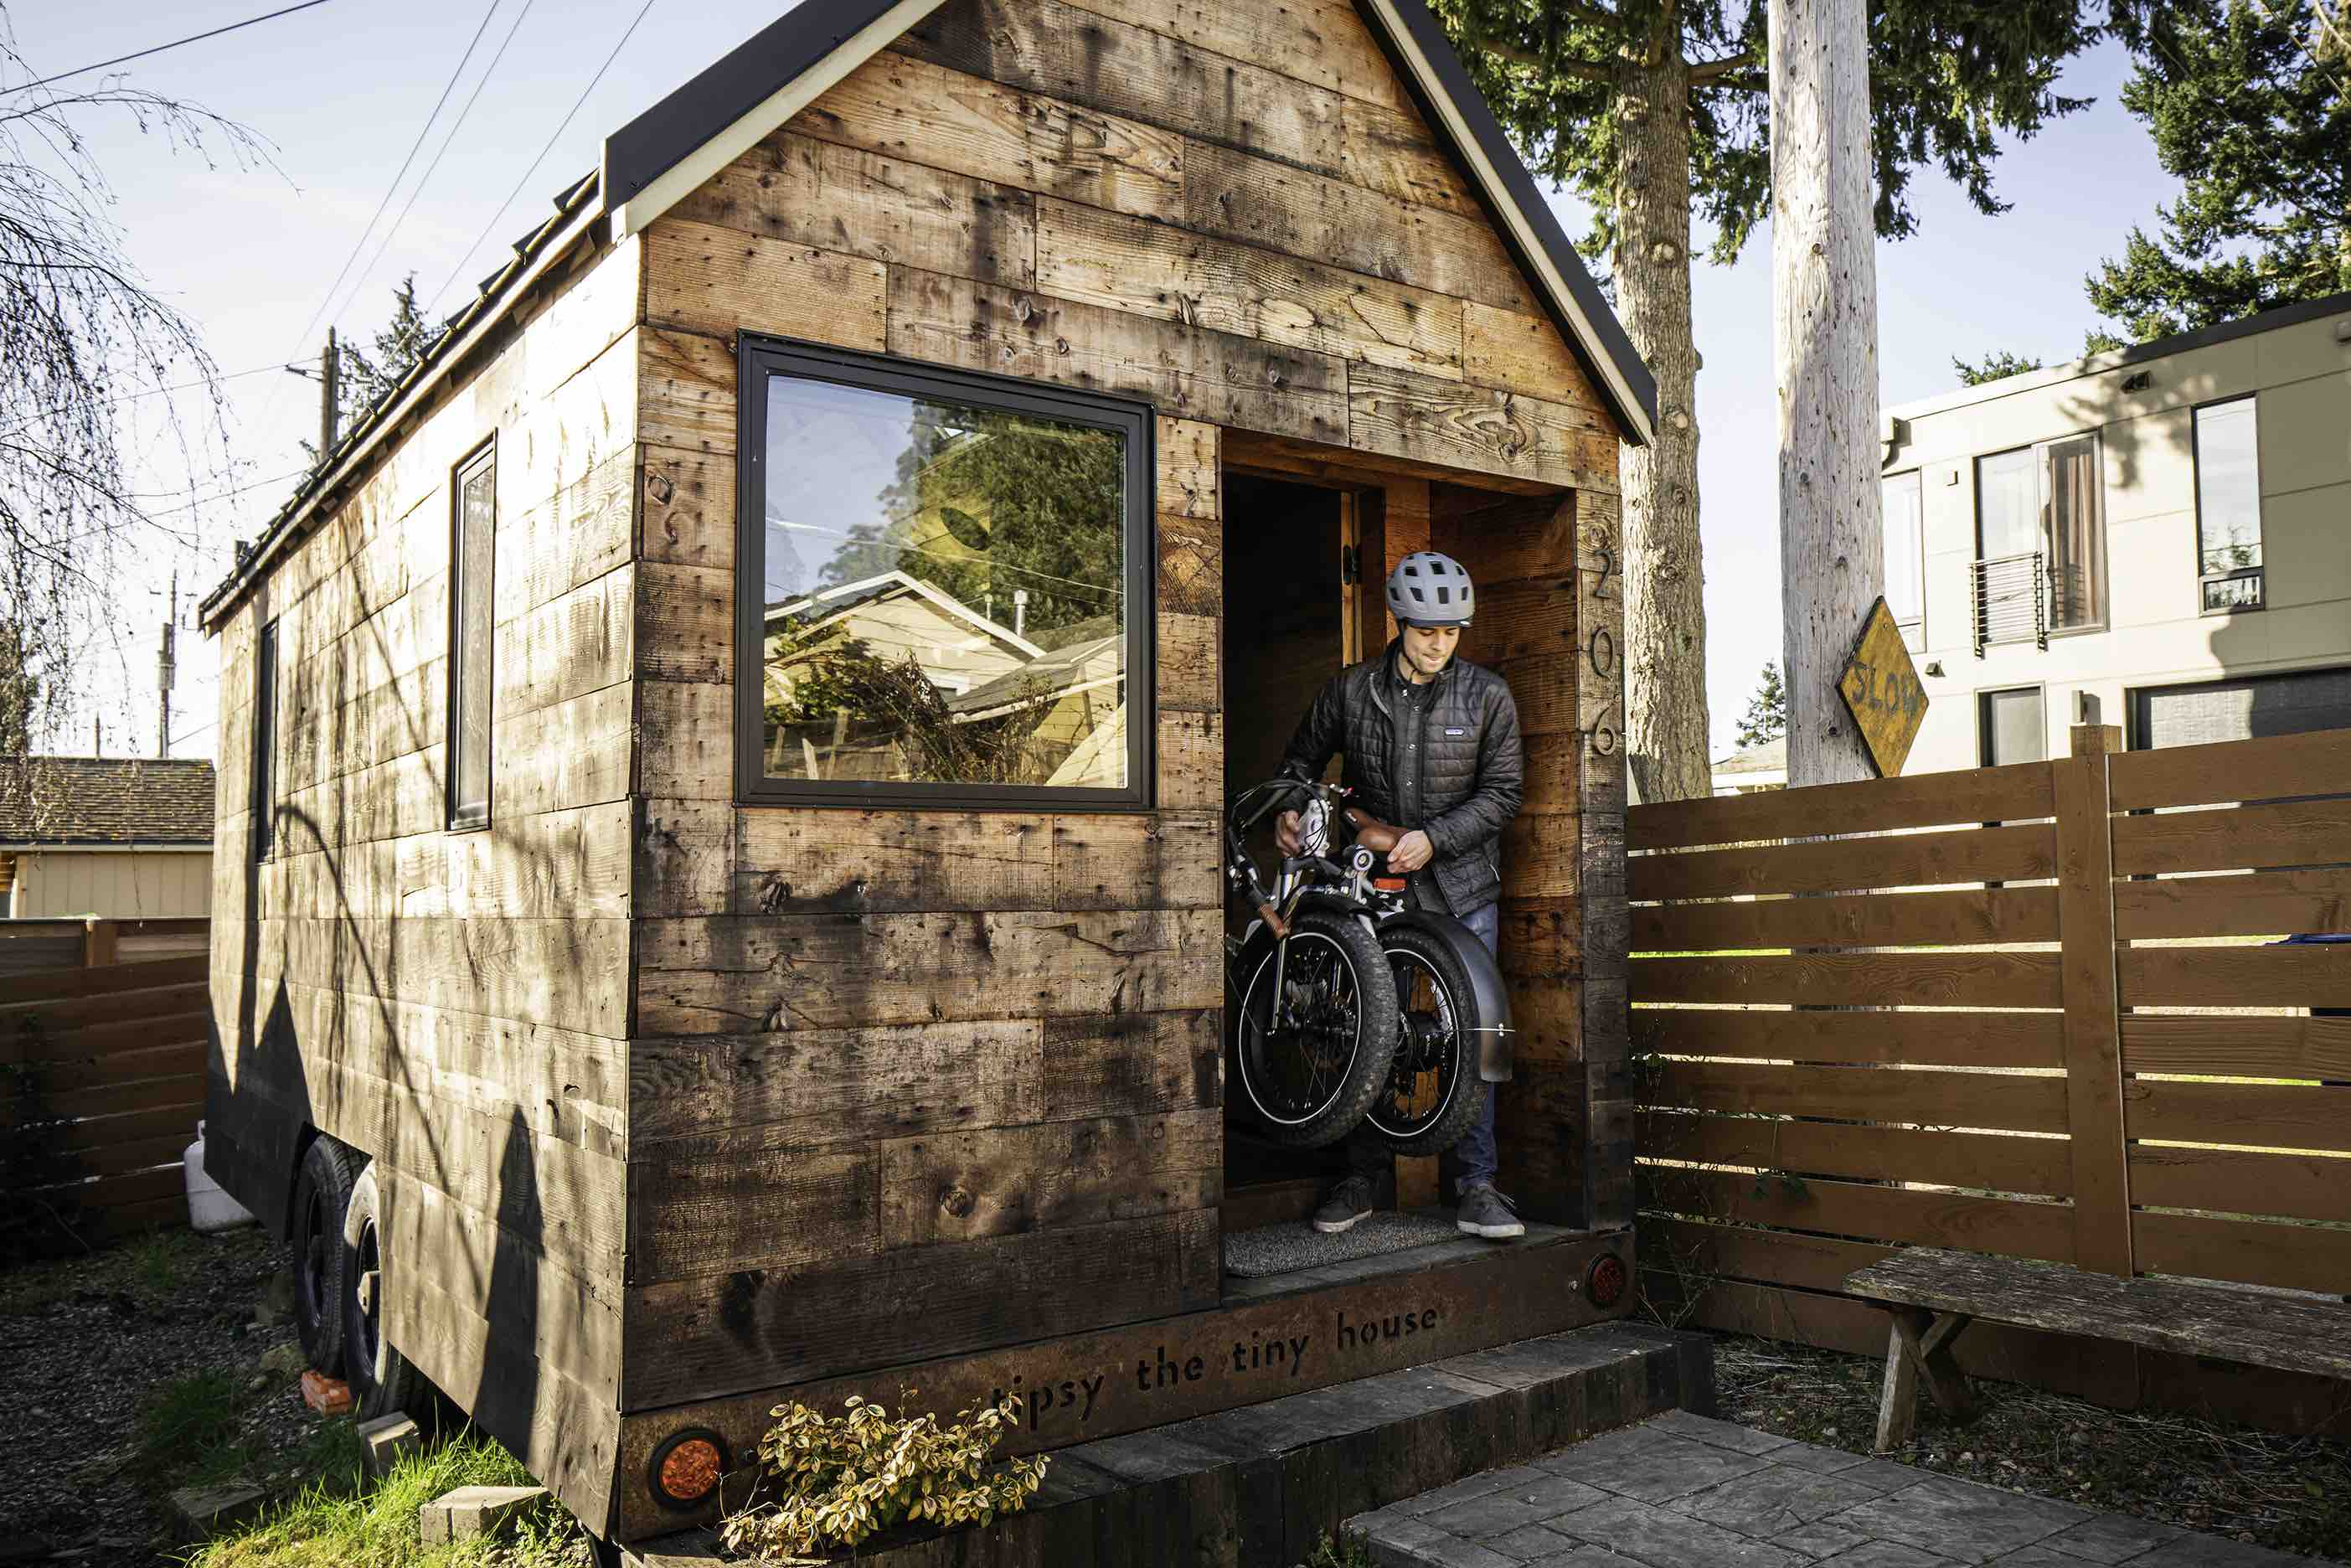 A man exits a tiny house with his RadMini electric folding bike.